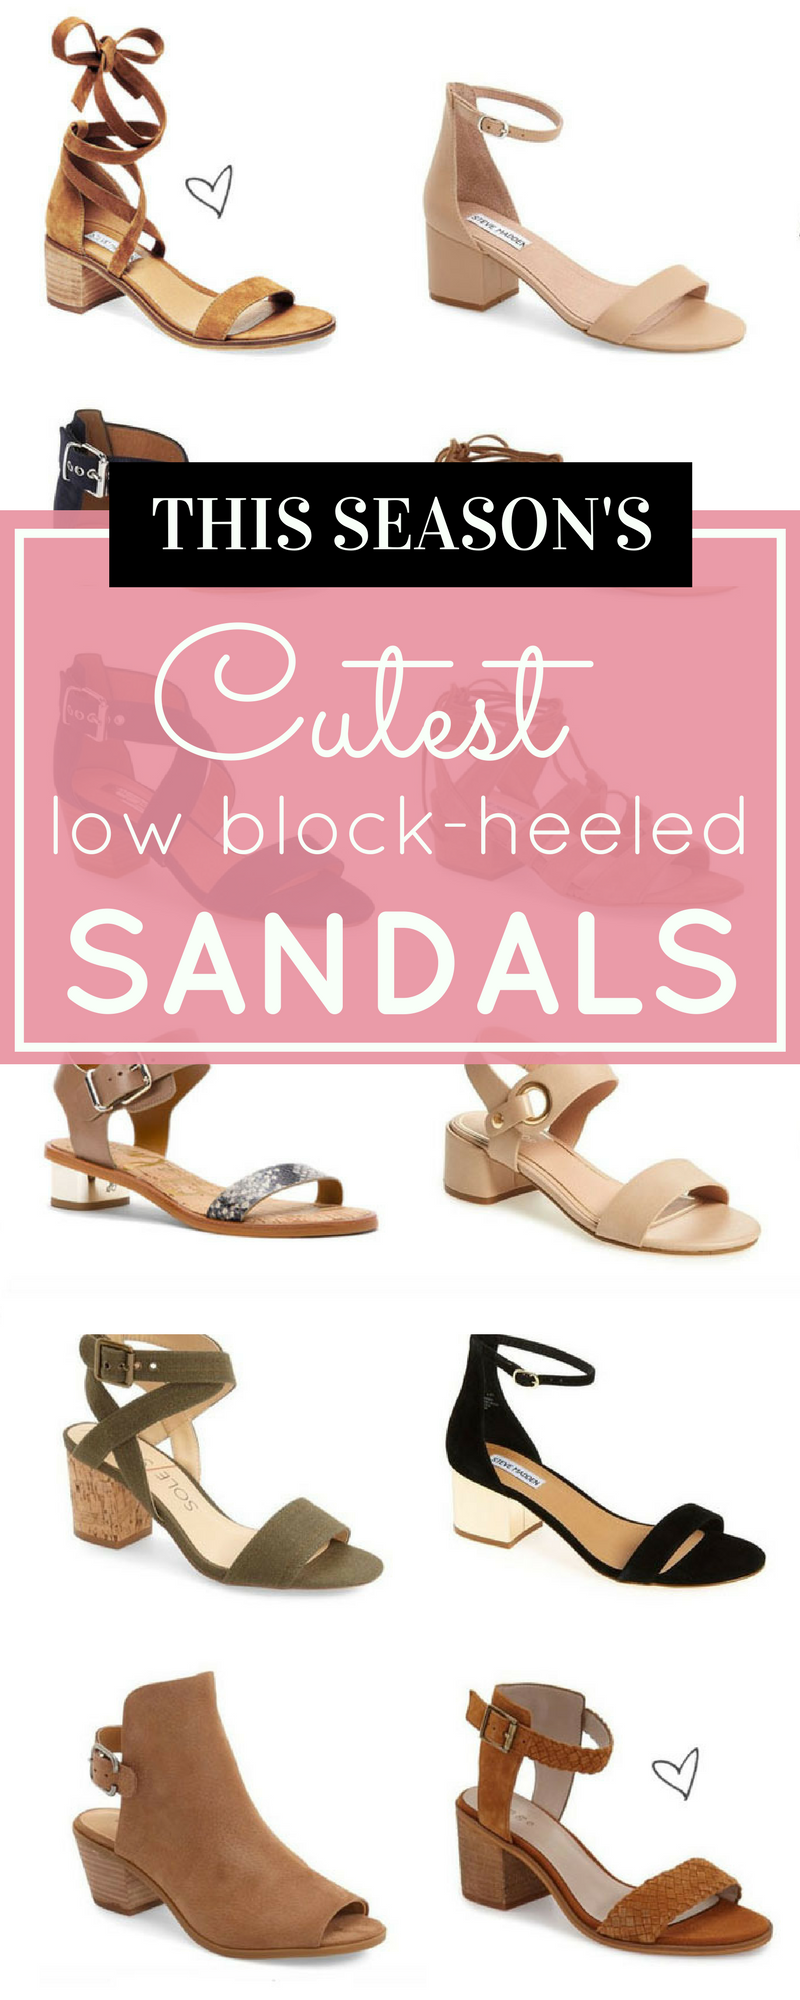 Say hello to the season's cutest low block-heeled sandals. These retro sandals go with everything and the low, sturdy covered block-heel keeps theme practical and comfortable. | glitterinc.com | @glitterinc